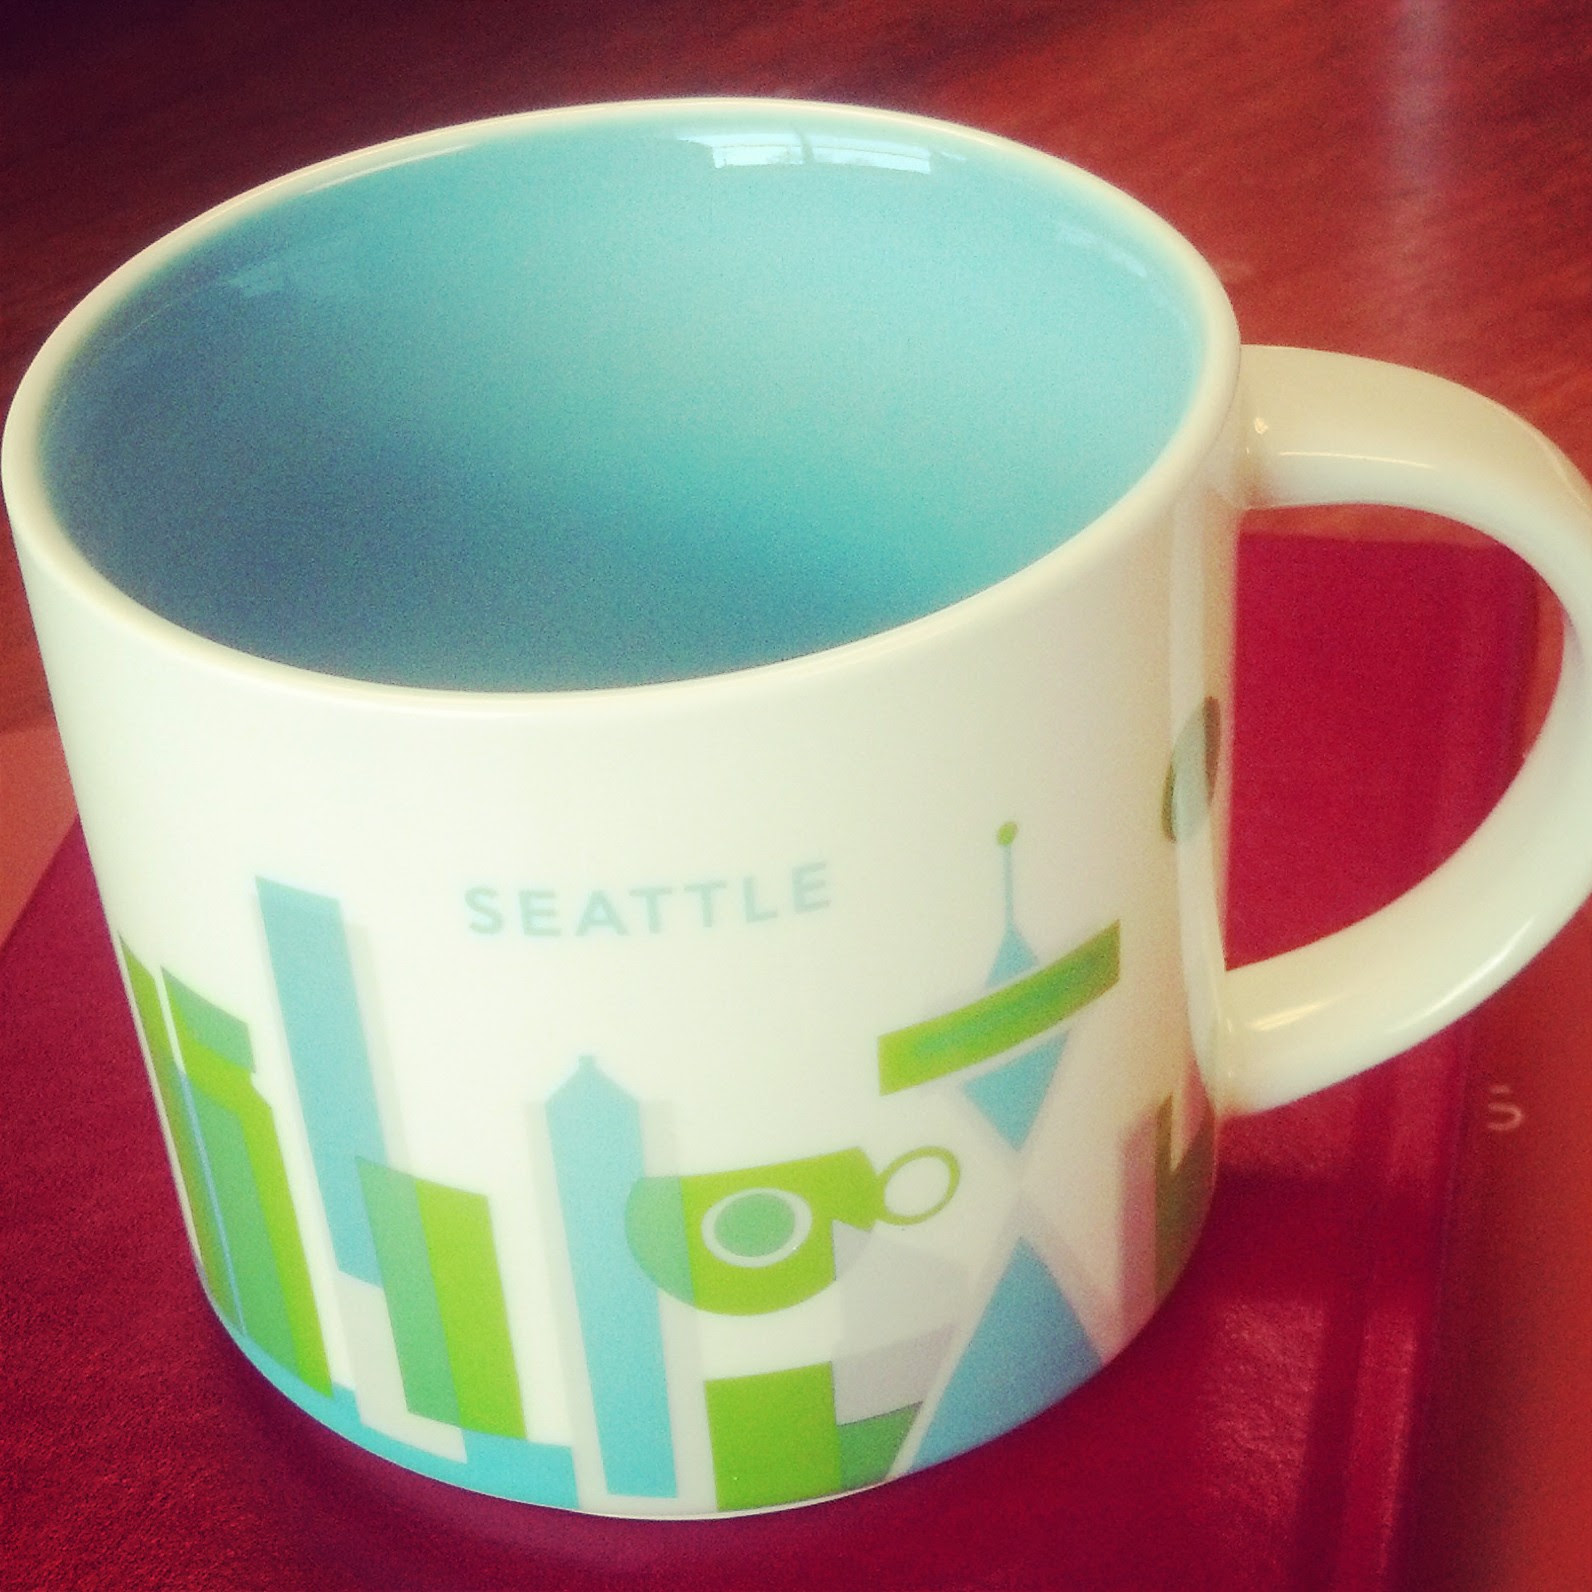 URHere Starbucks mug from Seattle